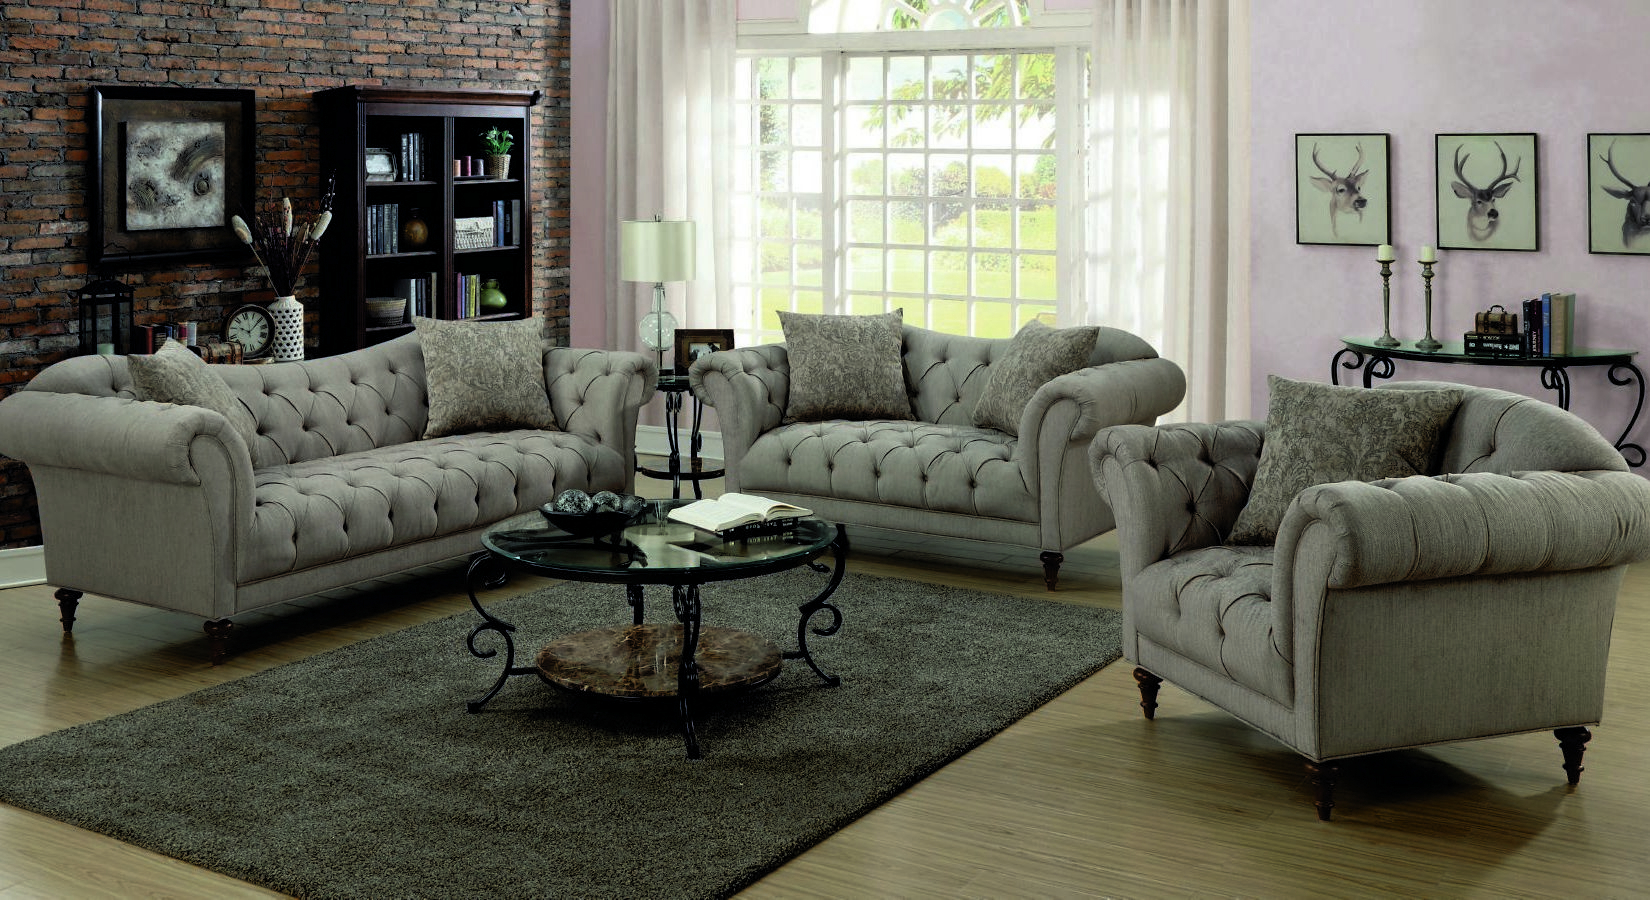 Bellision Alasdair Brown Two Piece Living Room Set throughout 13 Genius Ways How to Make Two Piece Living Room Set